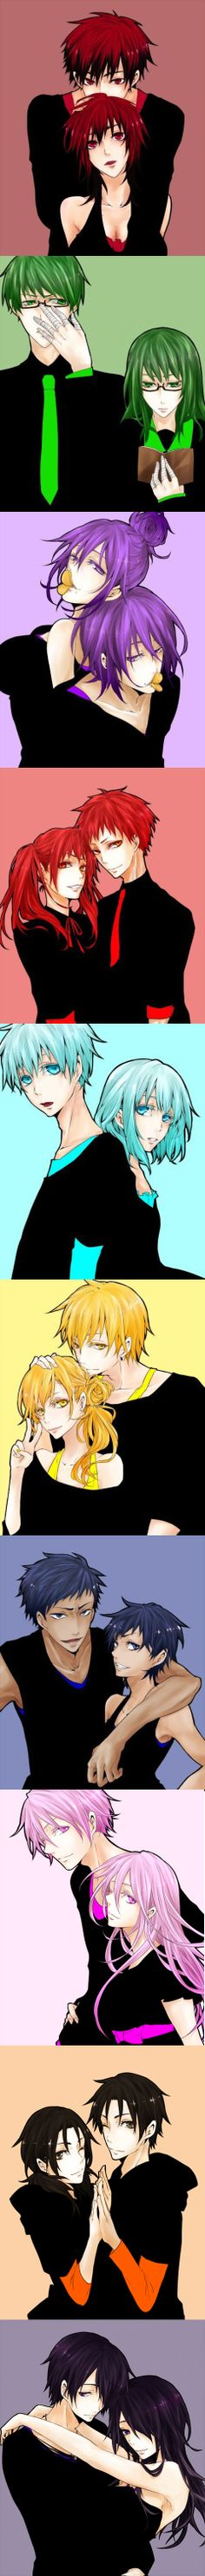 Kuroko no Basket genderbender. This artist is surprisingly accurat